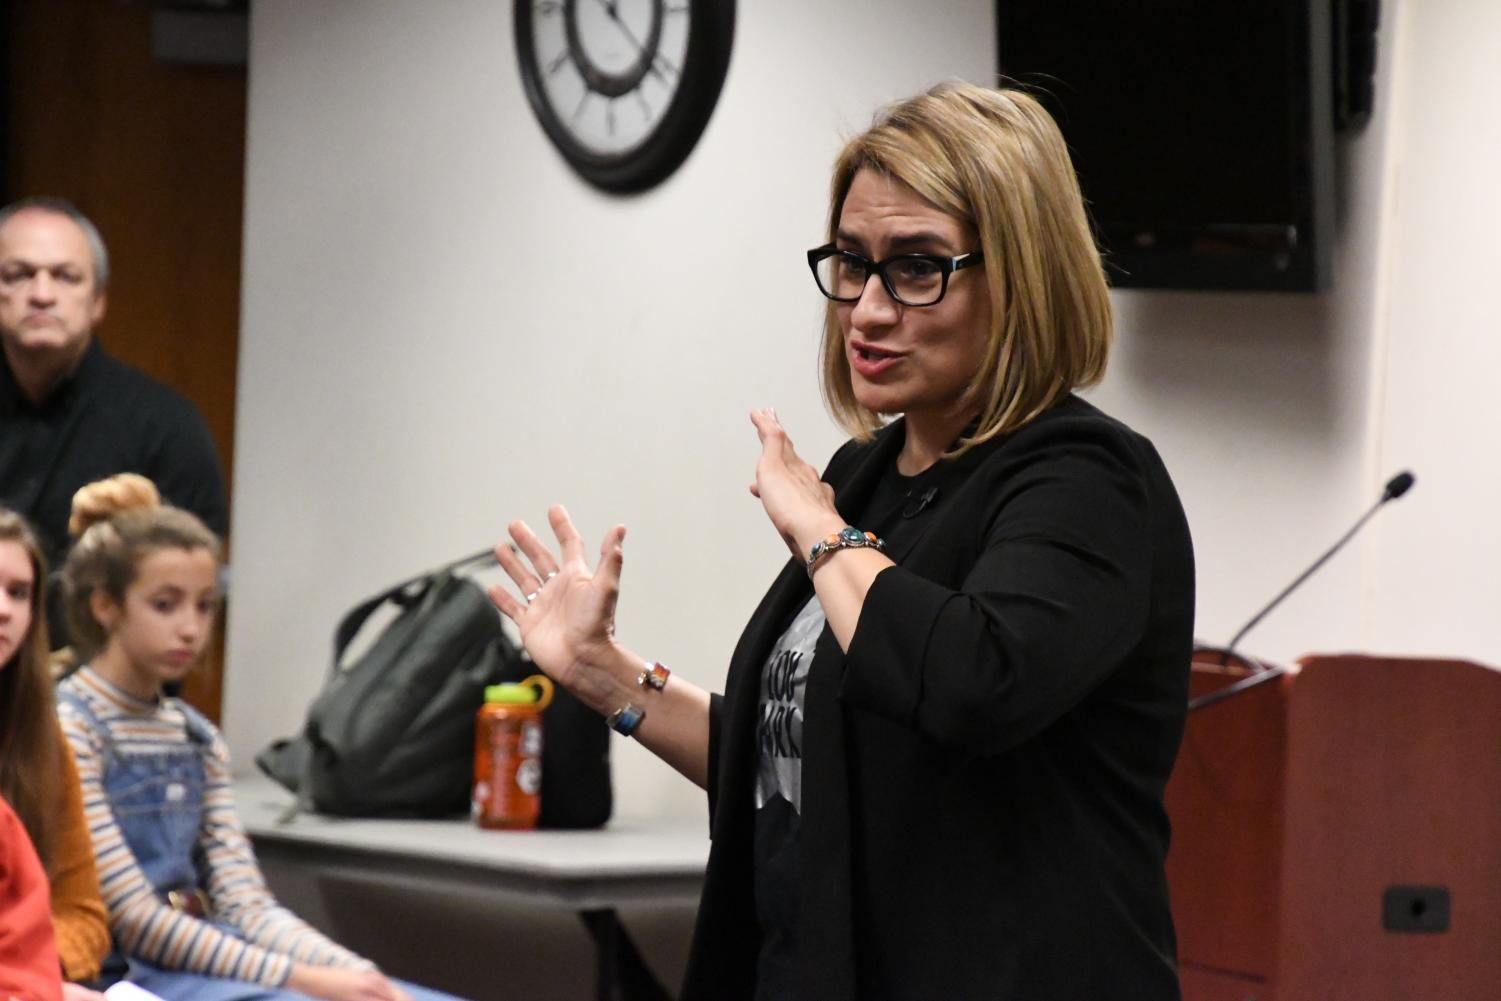 Minnesota's Lieutenant Governor-elect Peggy Flanagan spoke to Brad Brubakers 9th grade honors civics class. As a high schooler, Flanagan attended St. Louis Park  and spoke to the students about her time at Park as well as her time in the government.